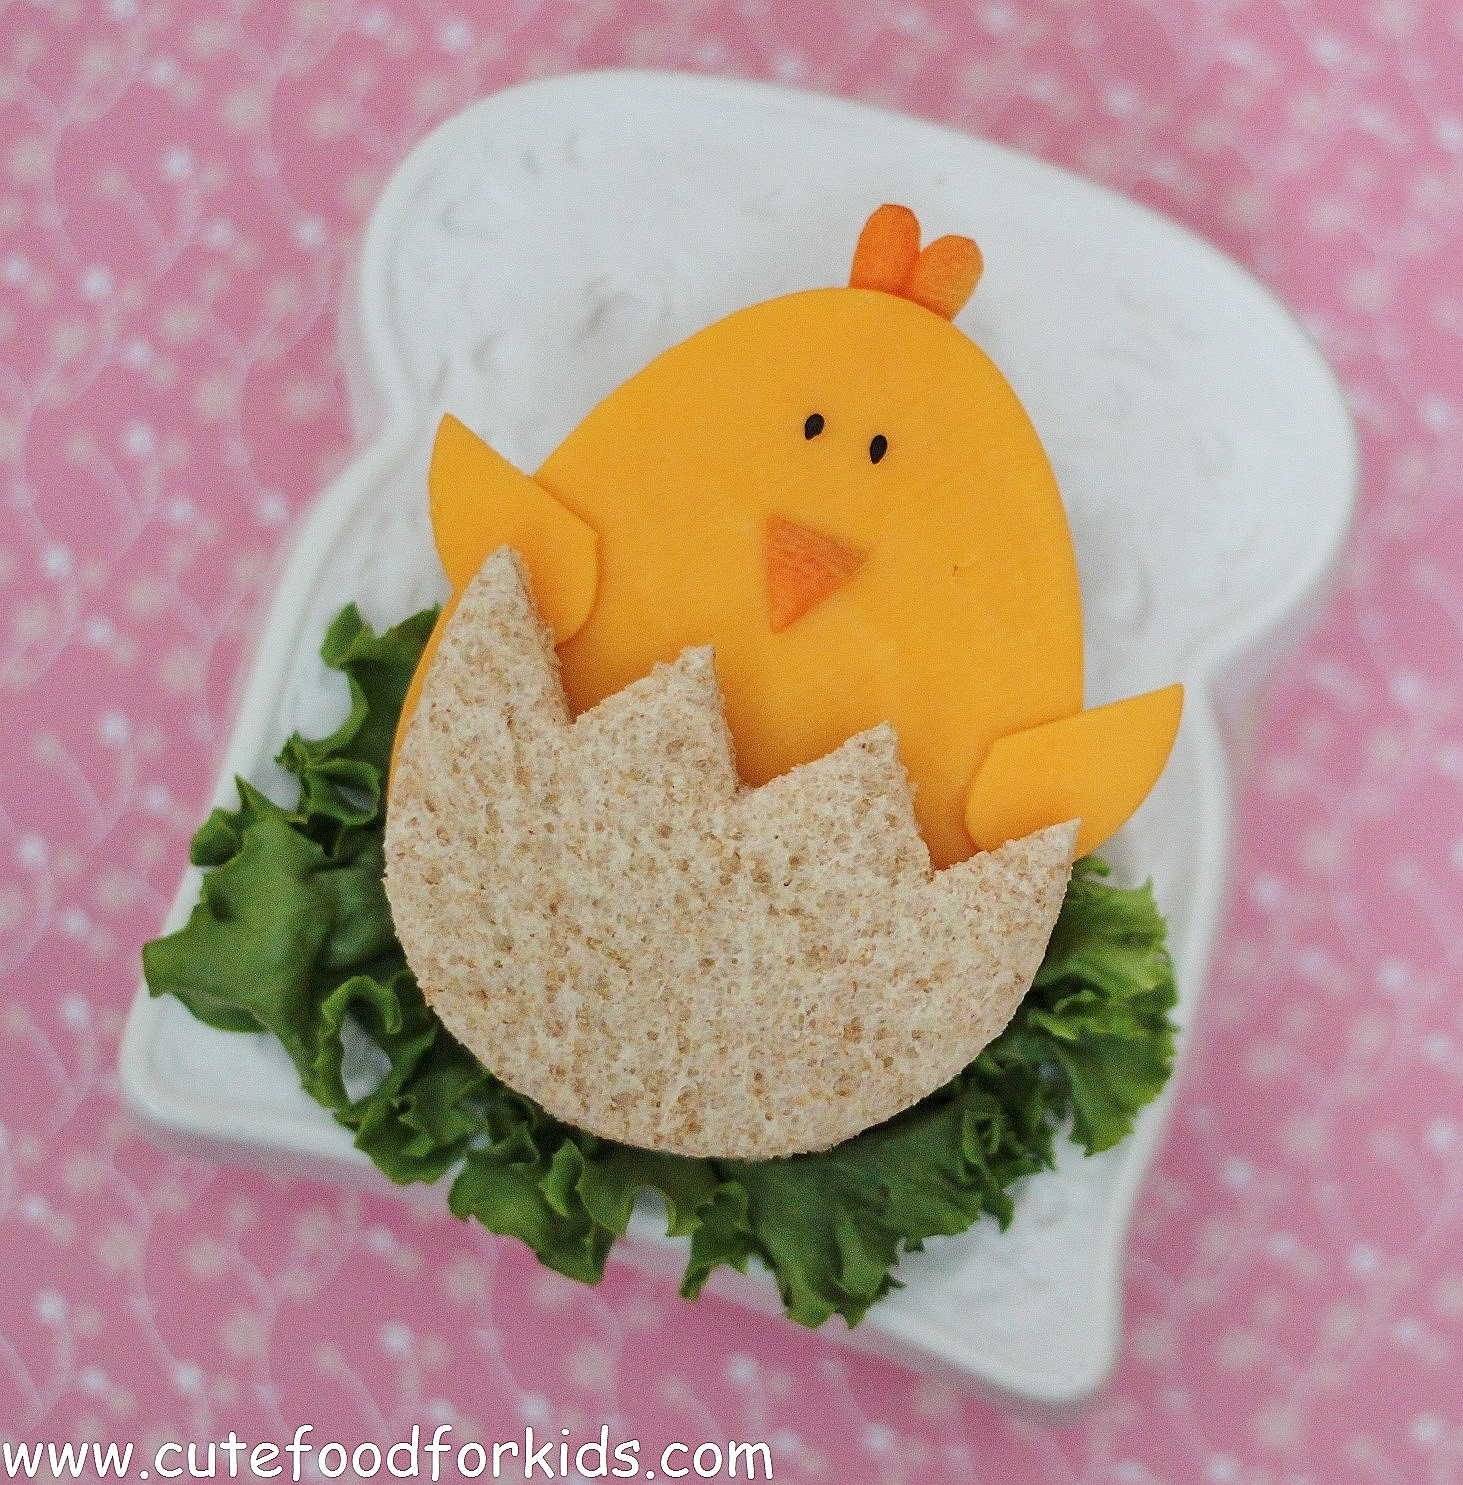 Cute food for kids easter sandwich baby chick for Easter ideas for food